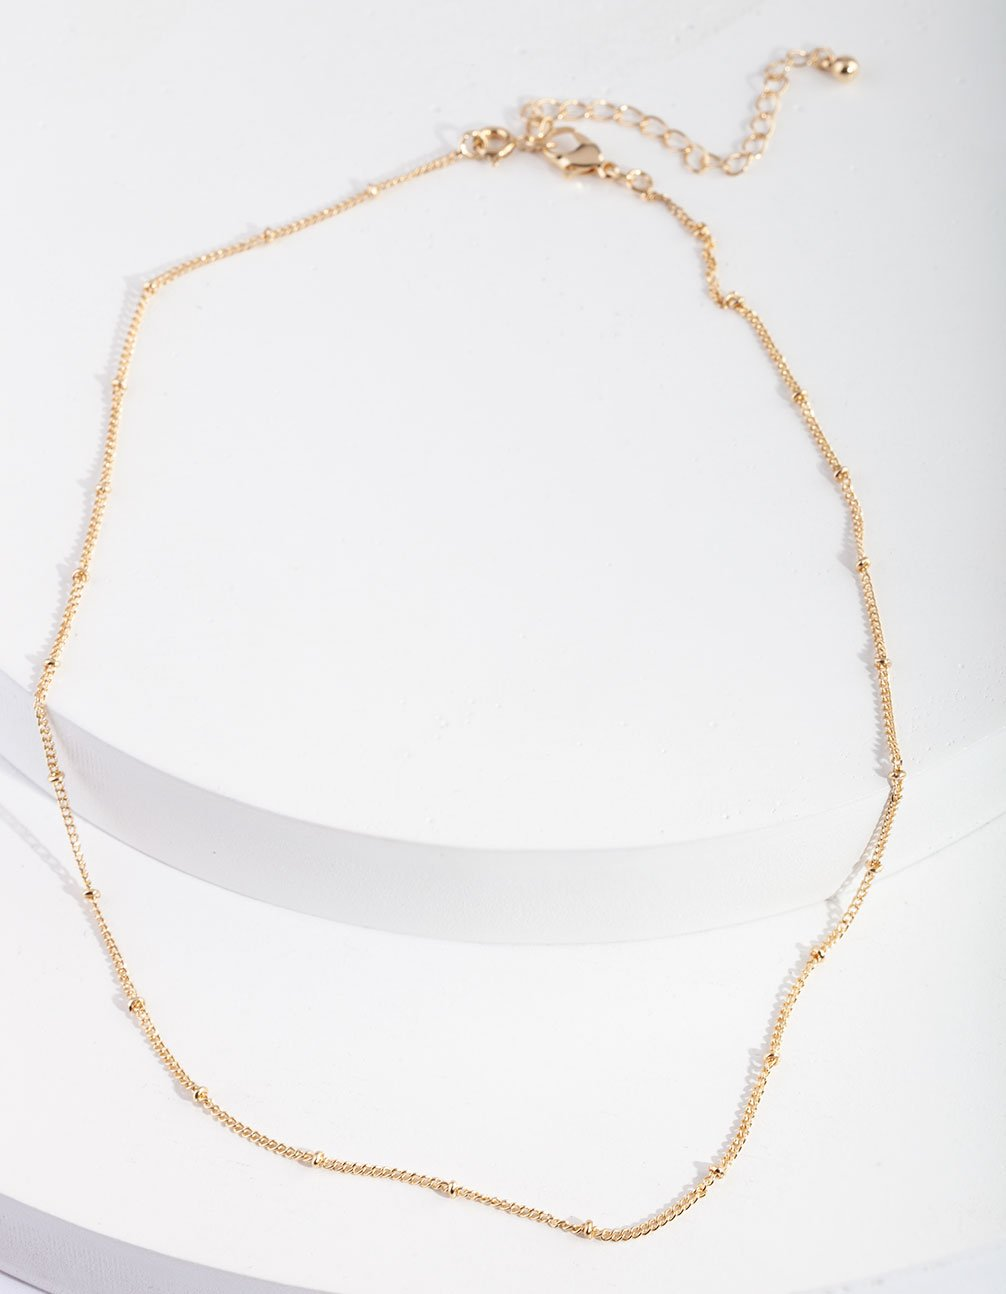 Gold Fancy Chain 44cm Necklace